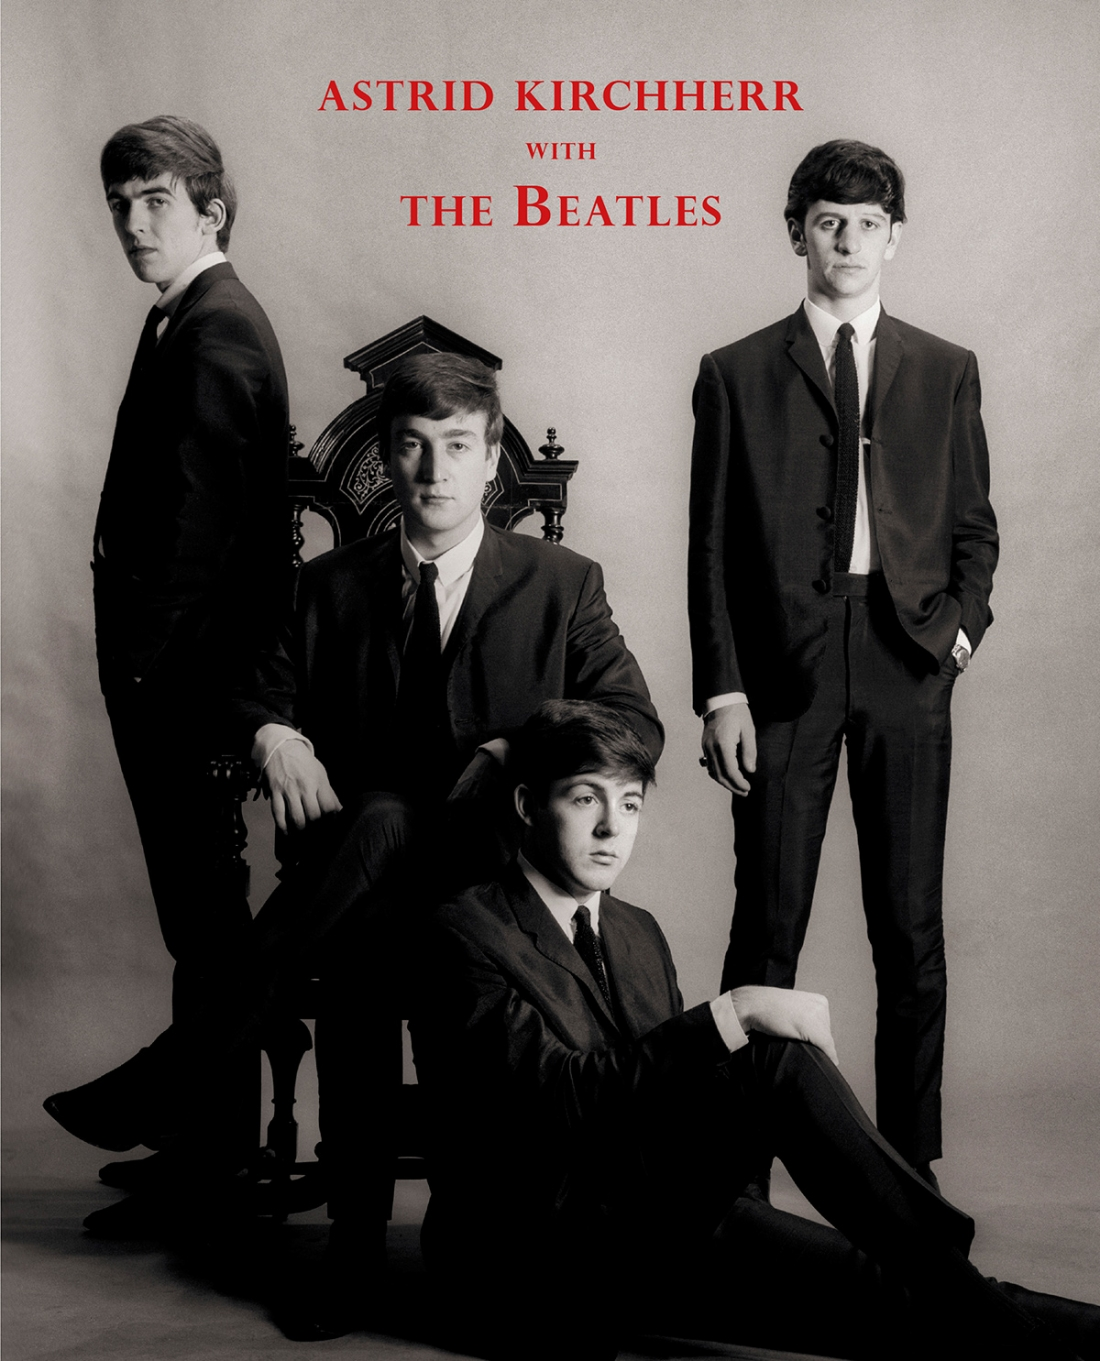 Astrid Kirchherr With The Beatles, cover